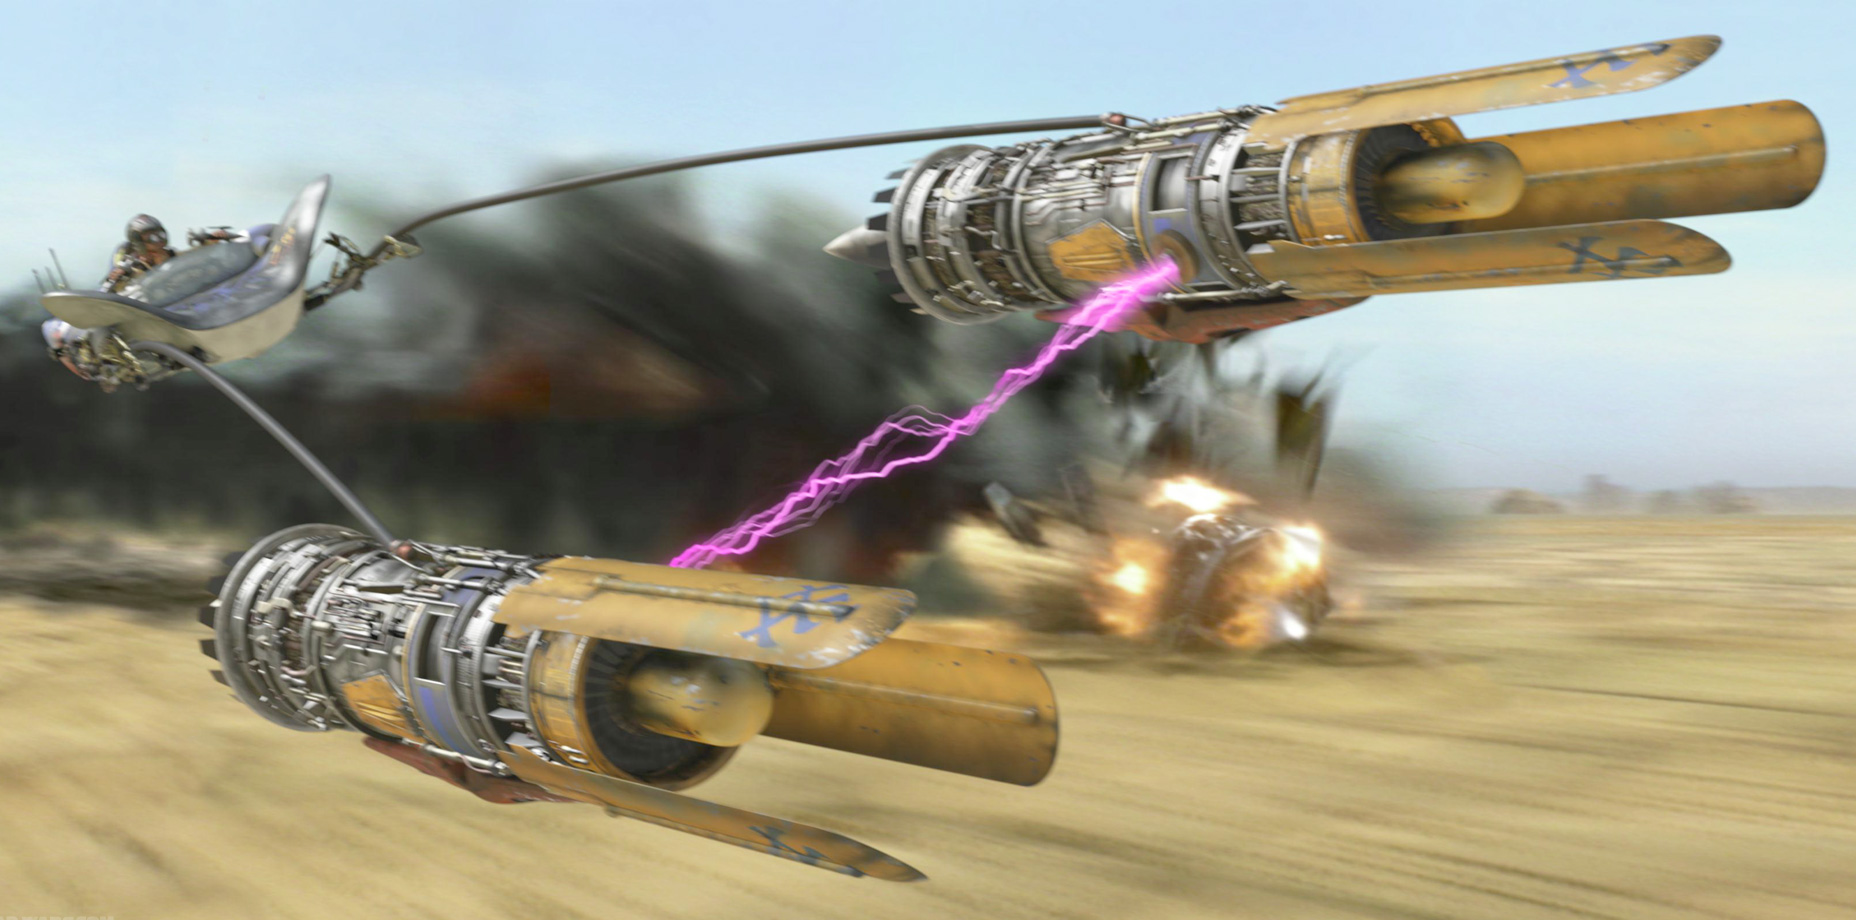 Anakin Skywalker's Podracer/Legends